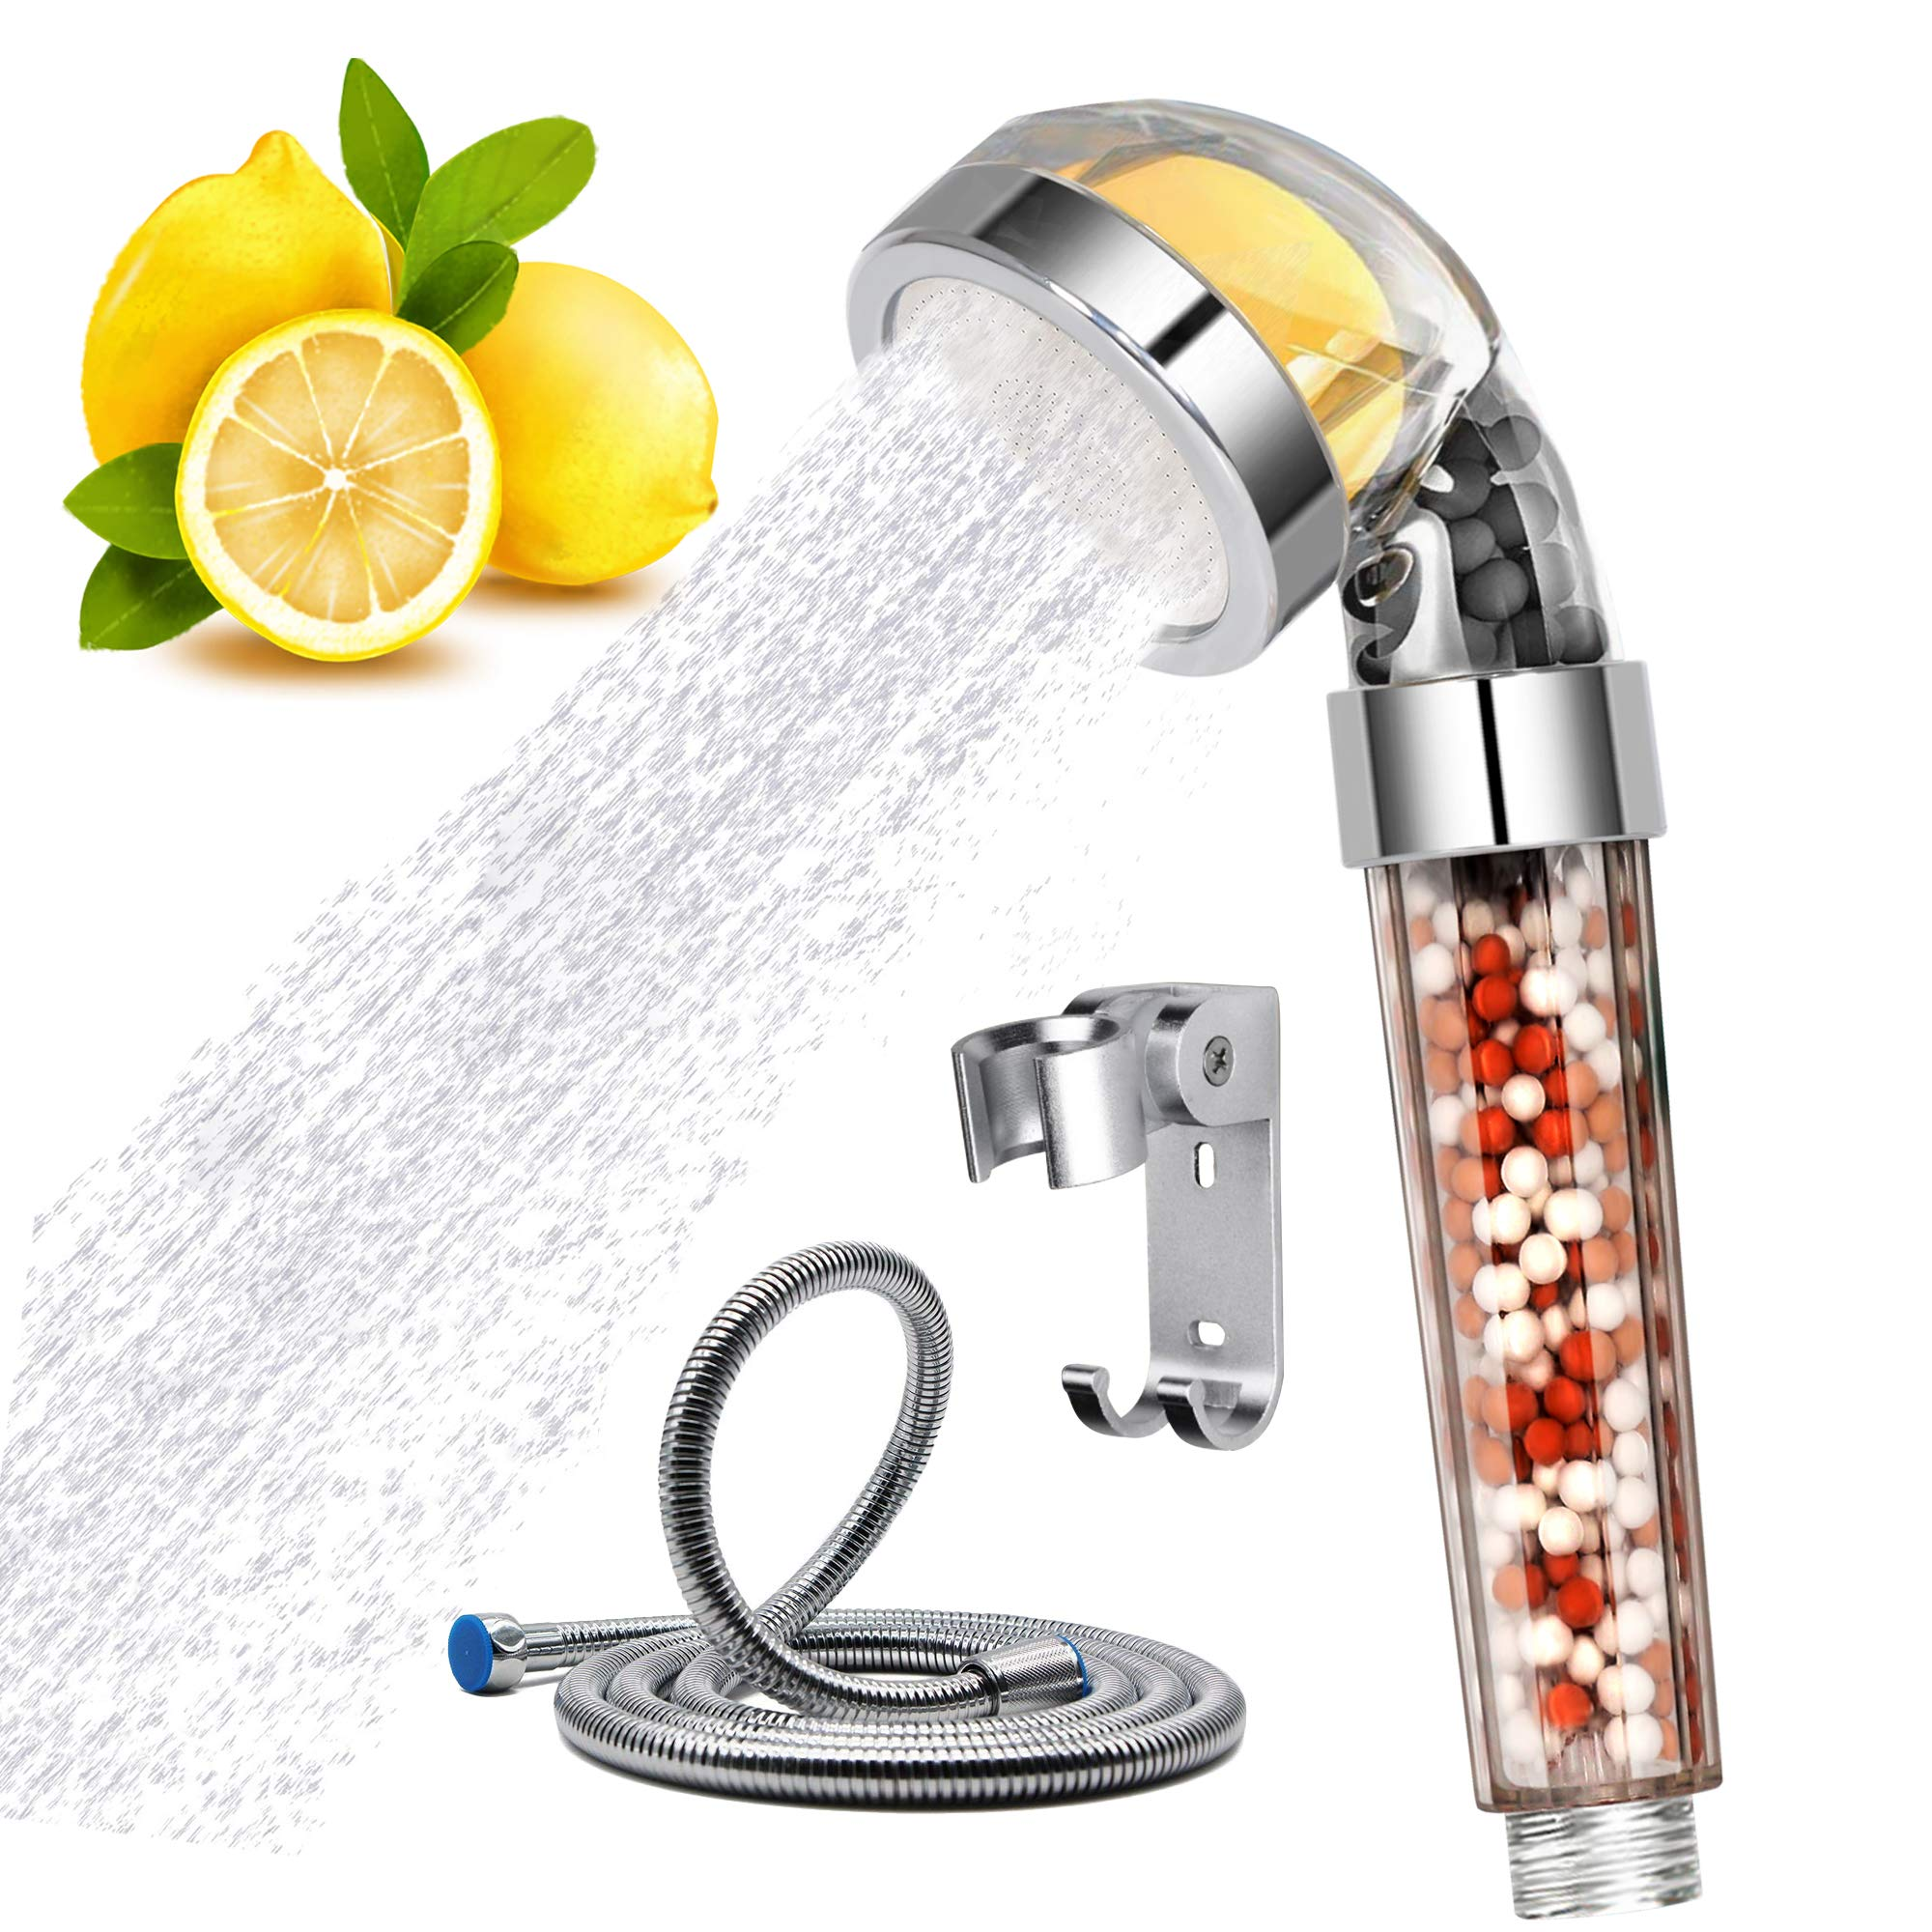 Aspior High Pressure Shower Head Rainfall Delta Handheld Shower Filter with Hose Full Vitamin C Chlorine Fluoride Removal Hard Water Softener Showhead Filters System Set(Silver,Transparent)